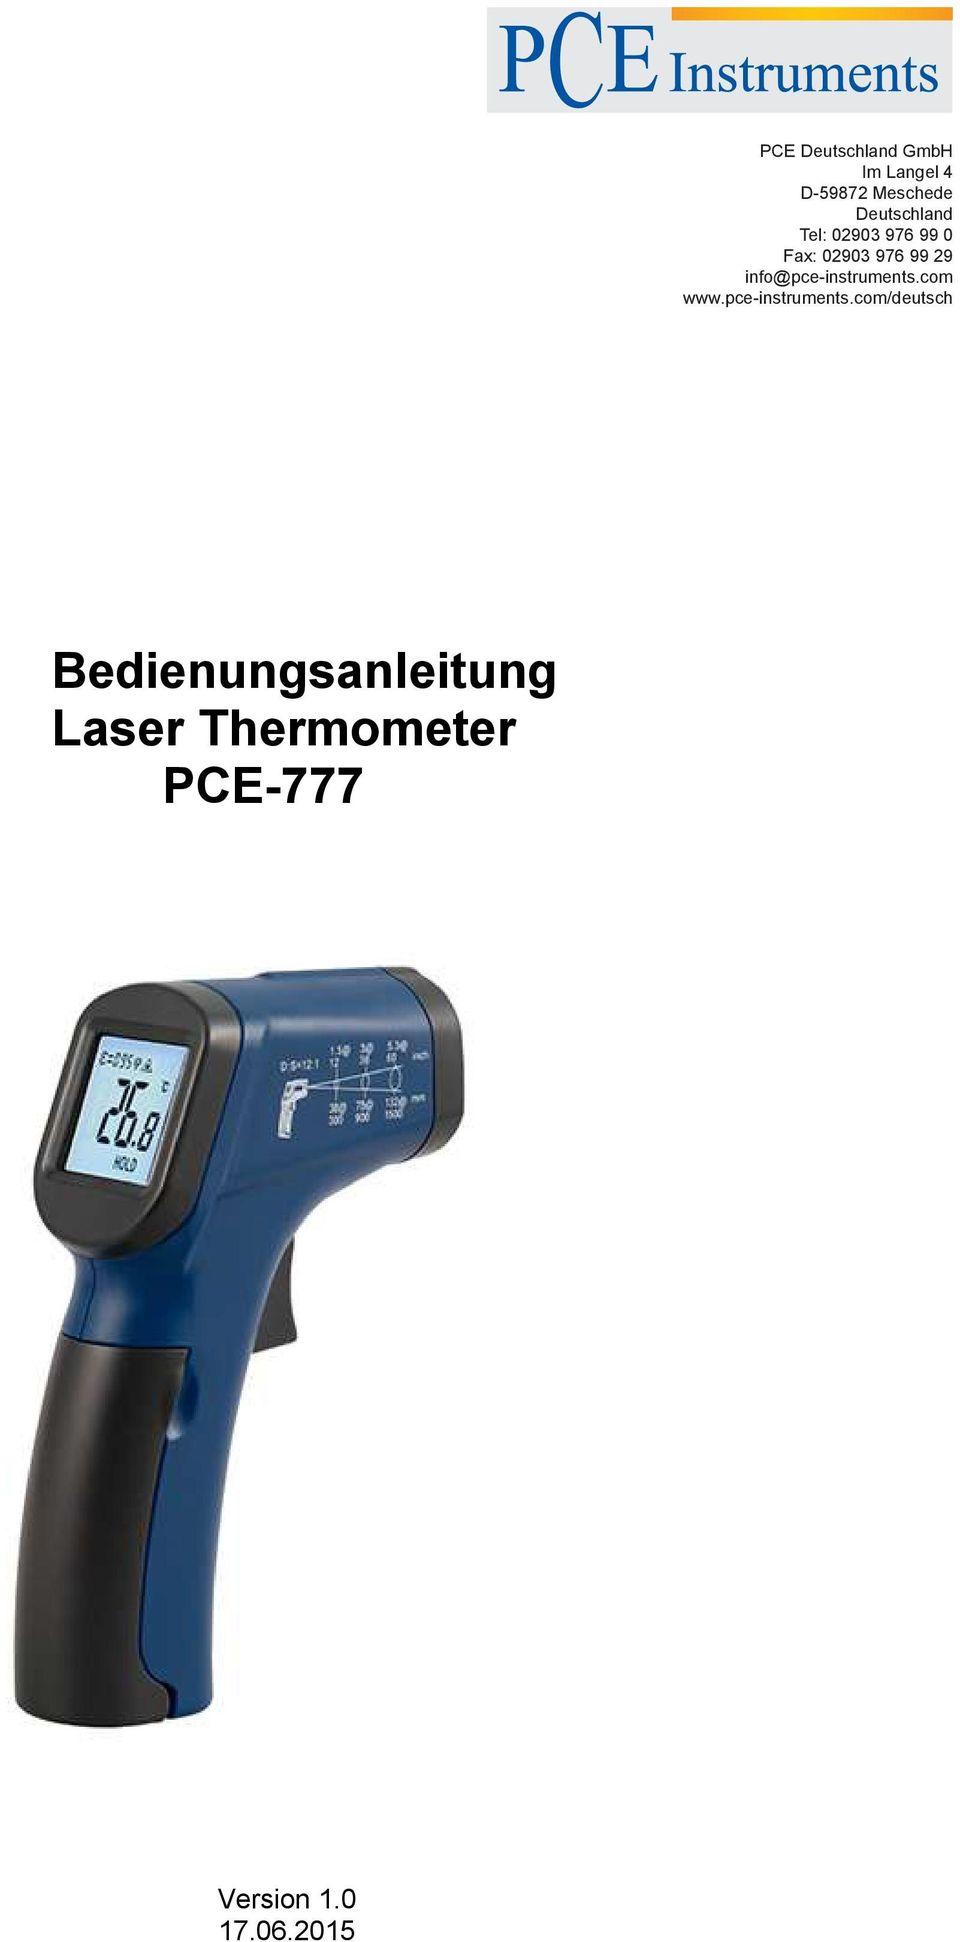 info@pce-instruments.